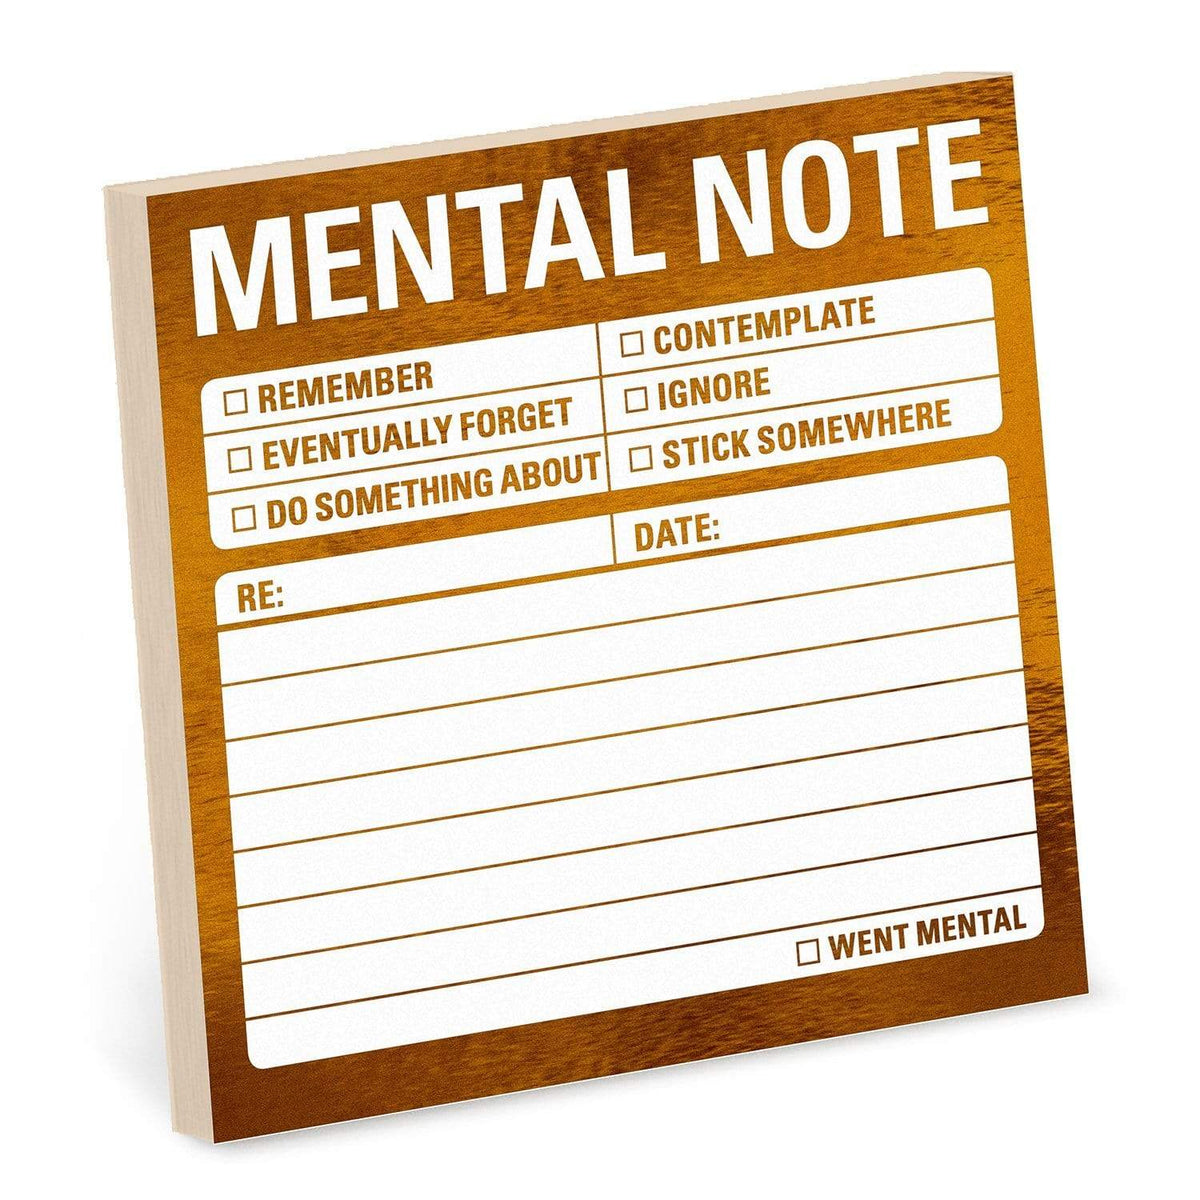 Mental Note Metallic Sticky Note Knock Knock Paper Goods